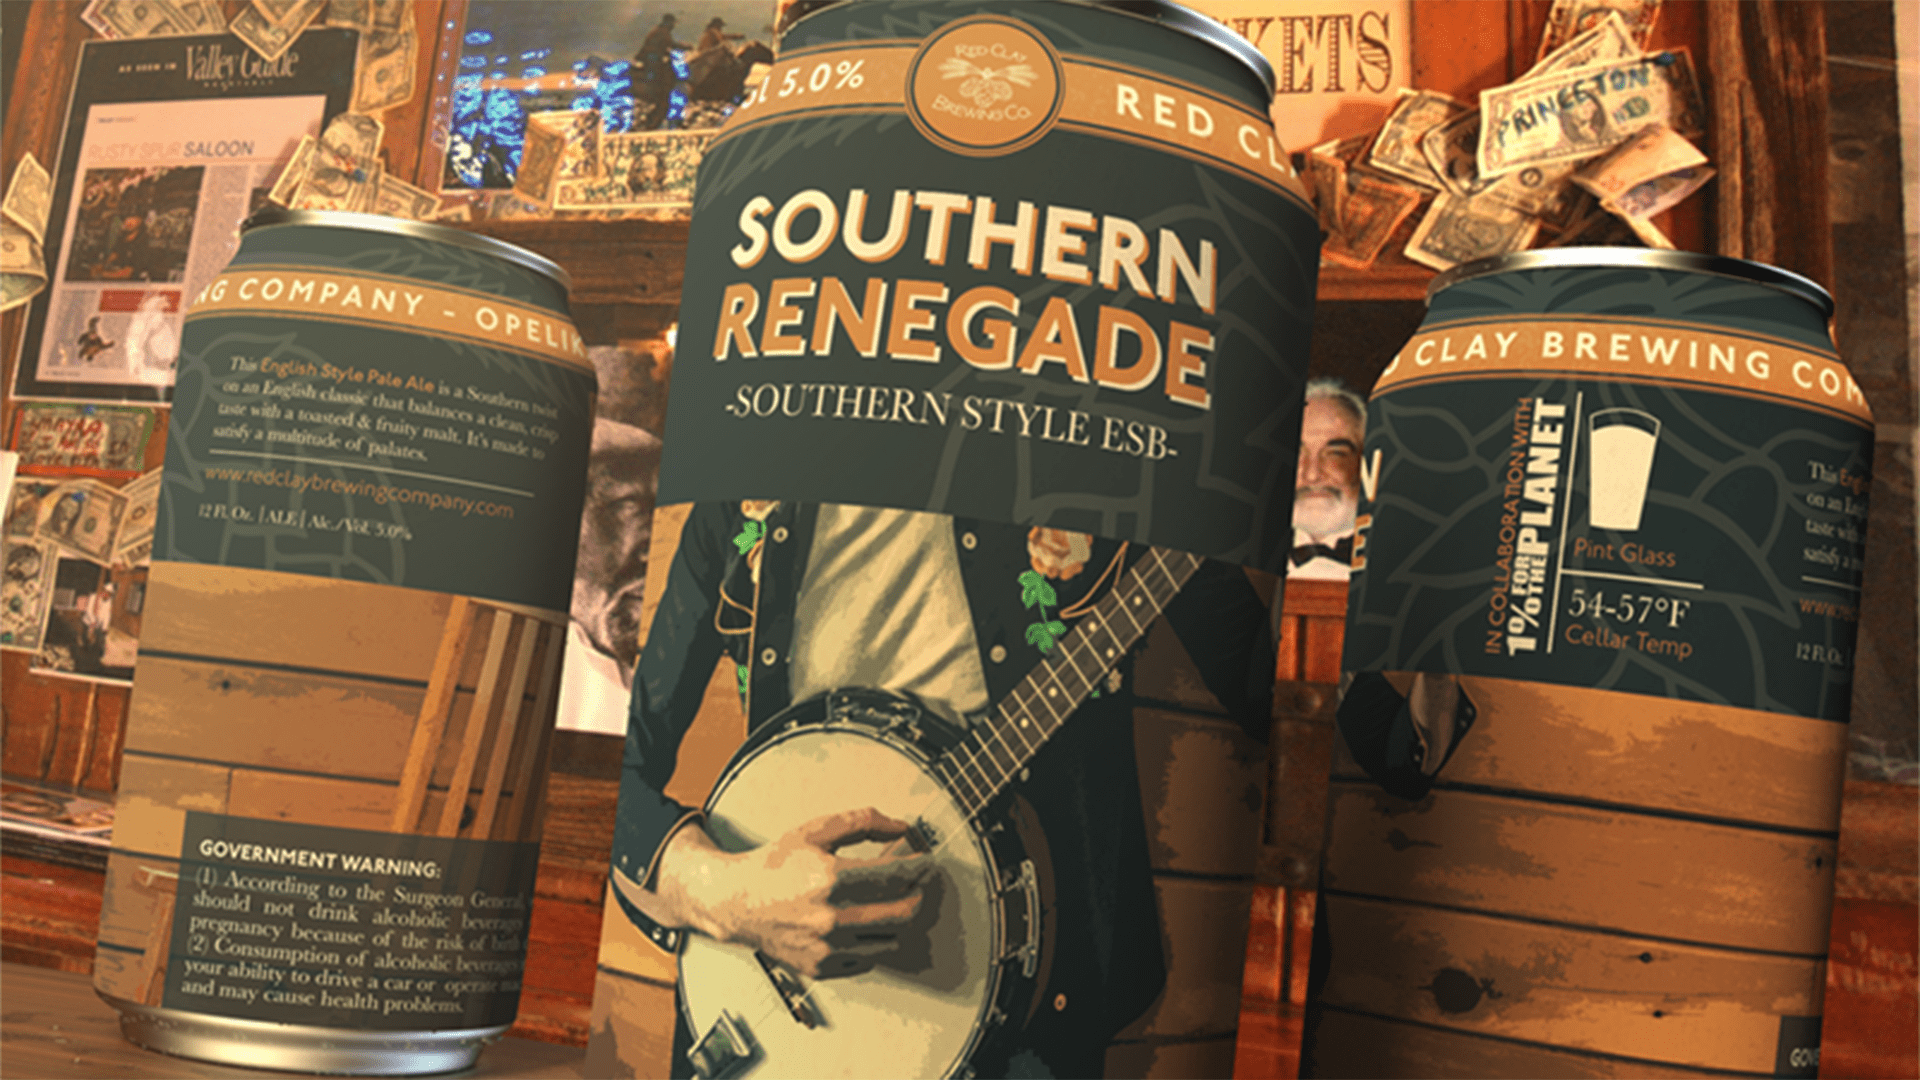 Red Clay Brewing Company Southern Renegade Cans